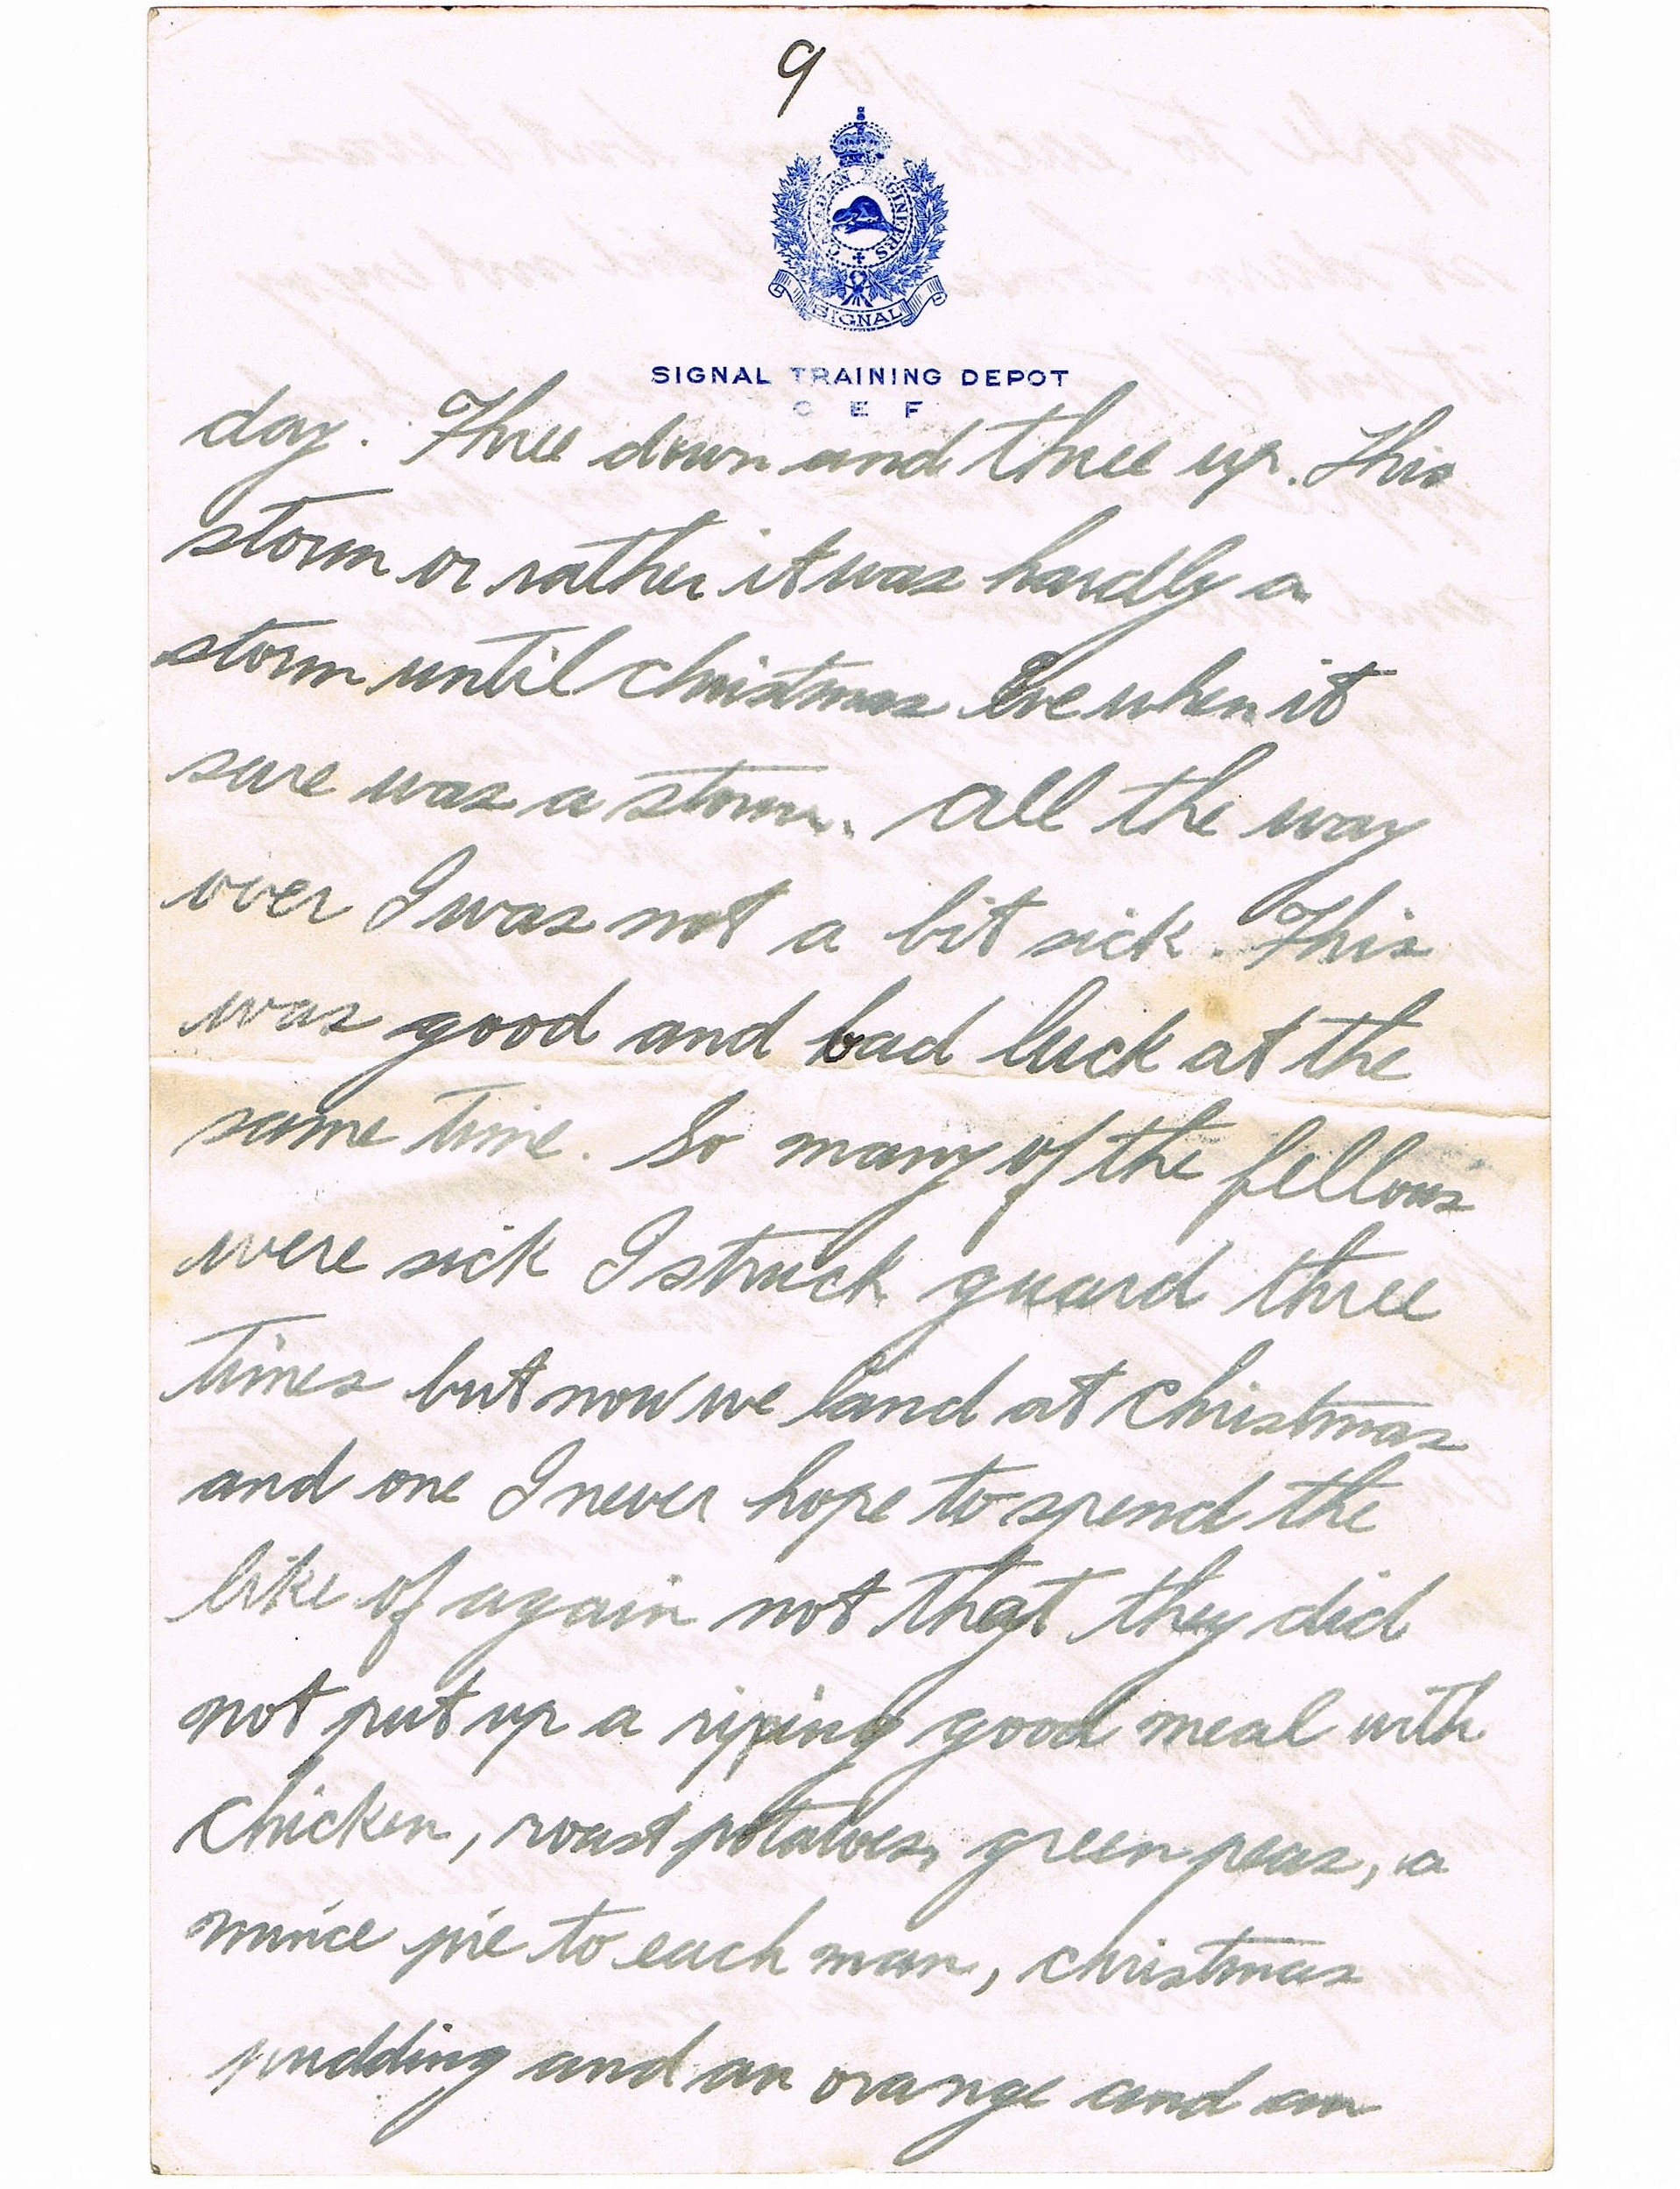 Ninth page of handwritten letter